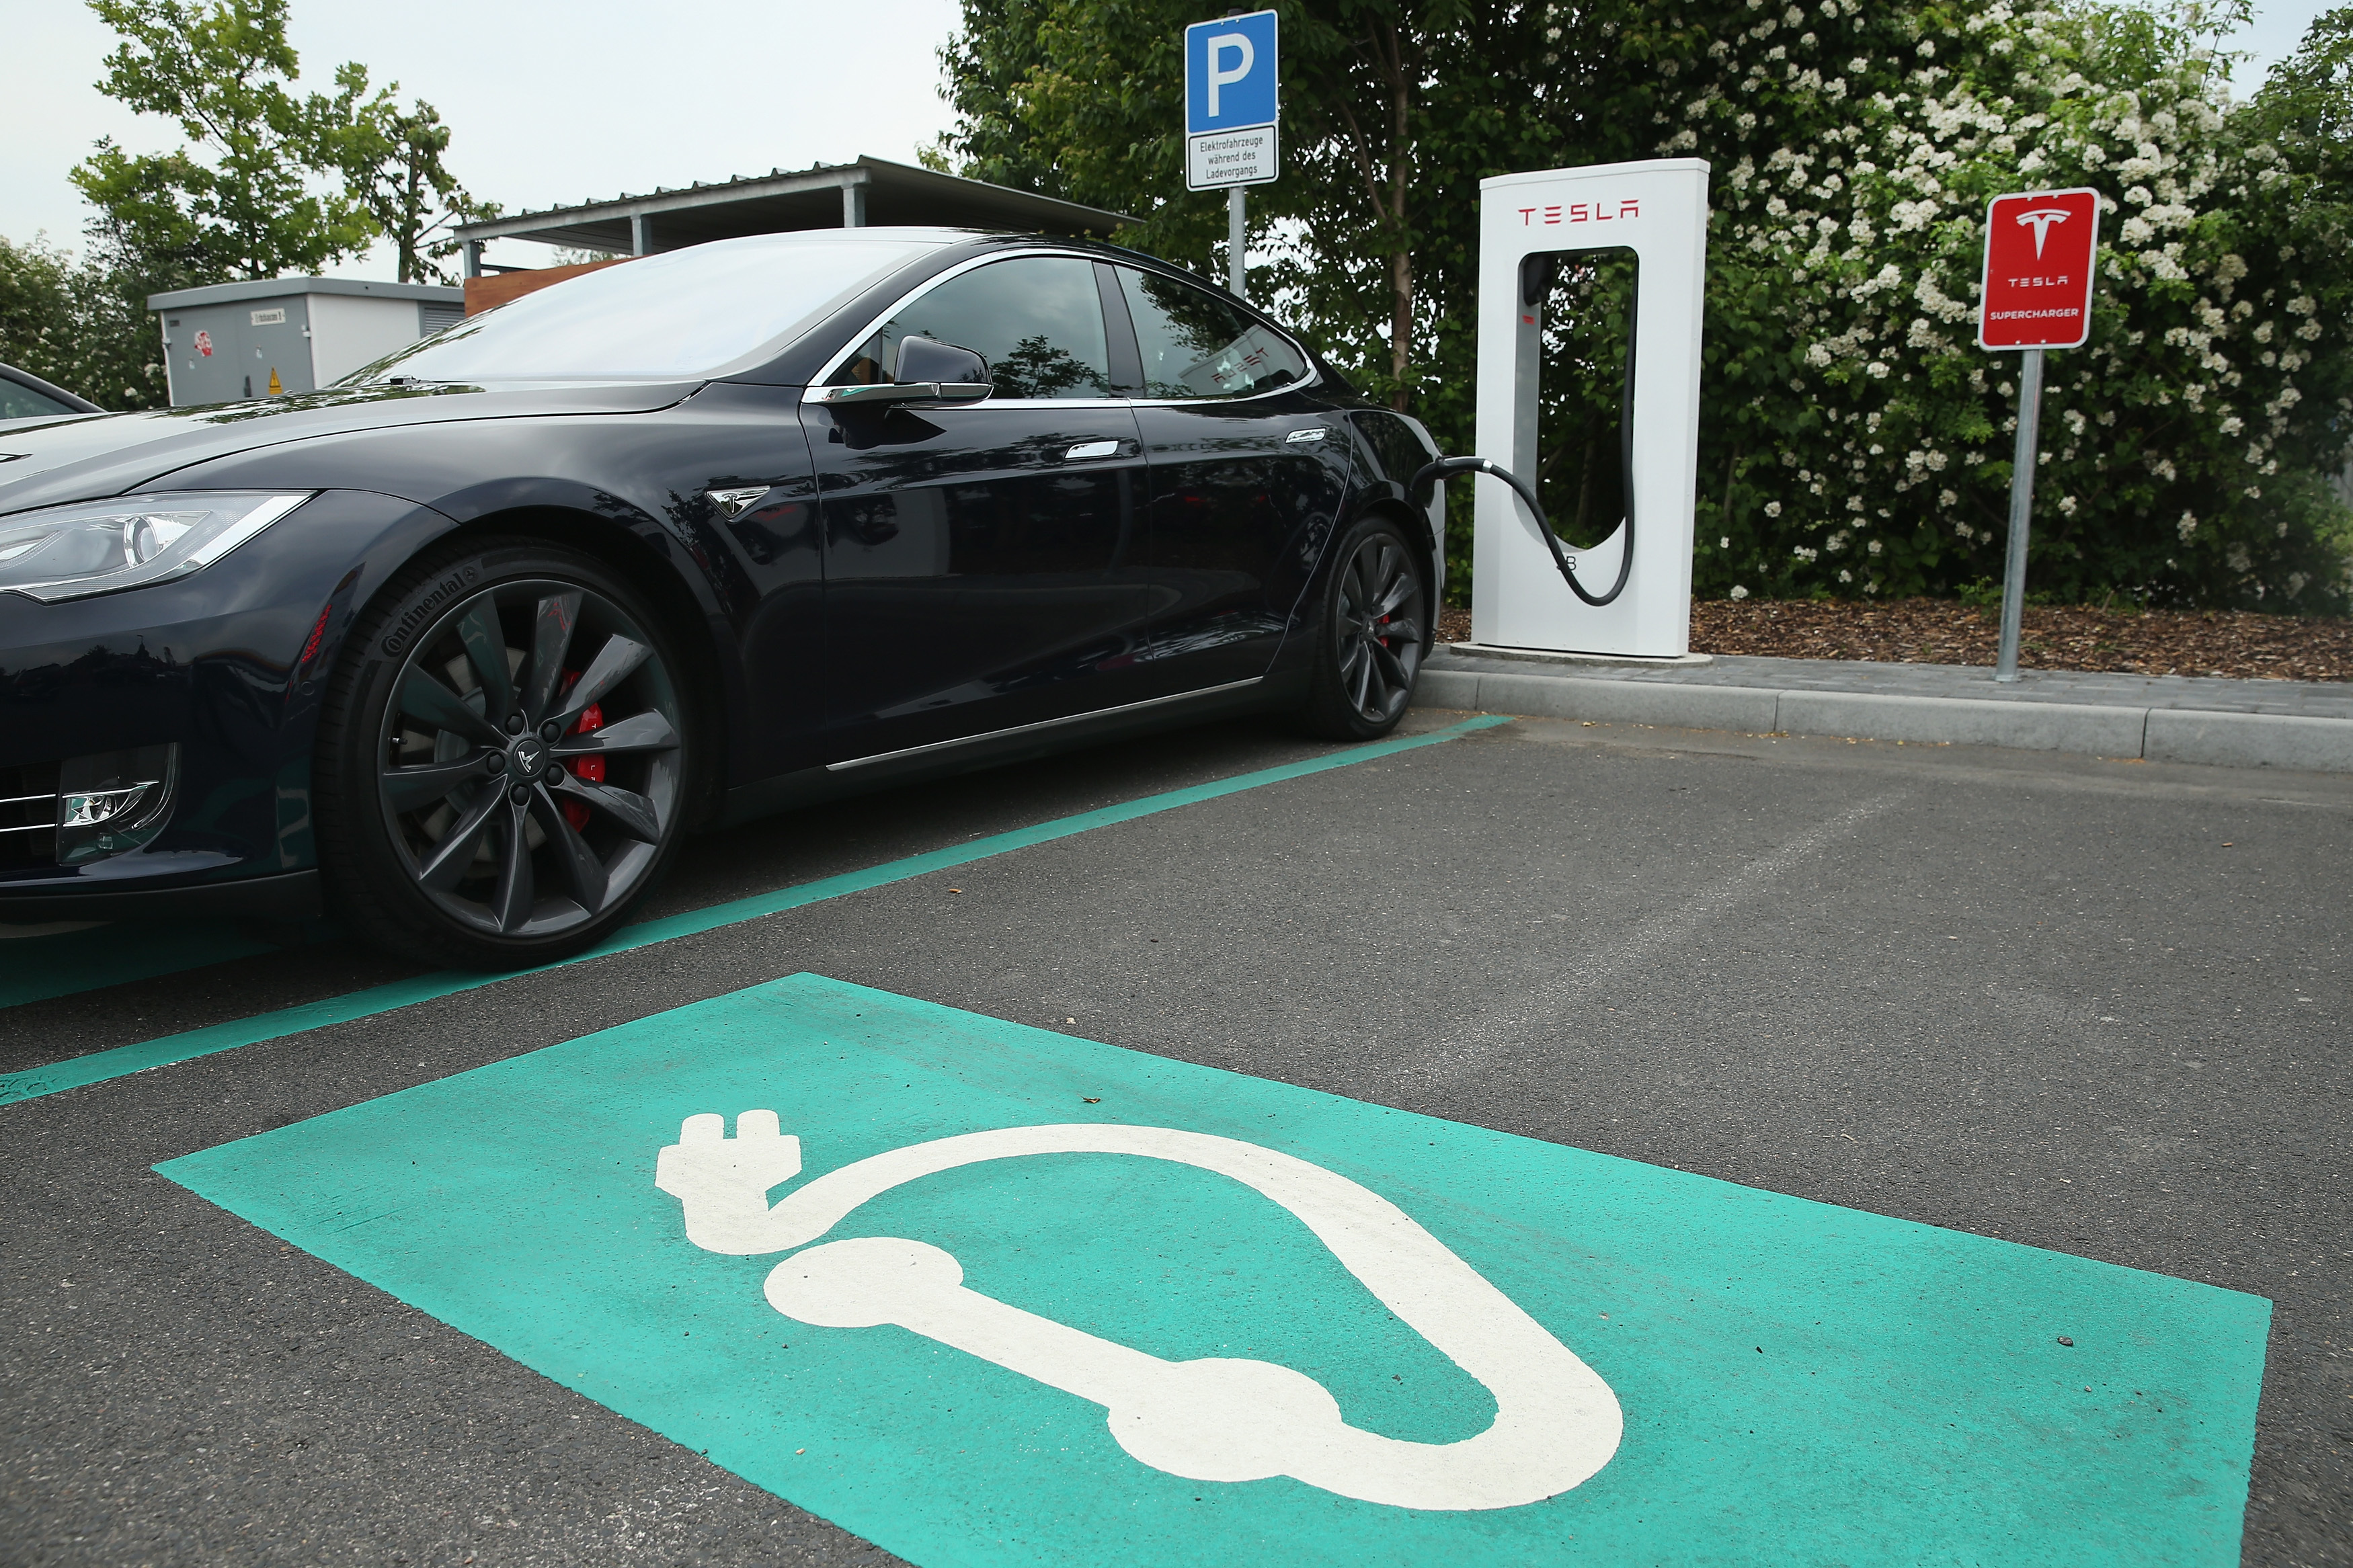 How Norway and Tesla Built the World's Electric Car Capital